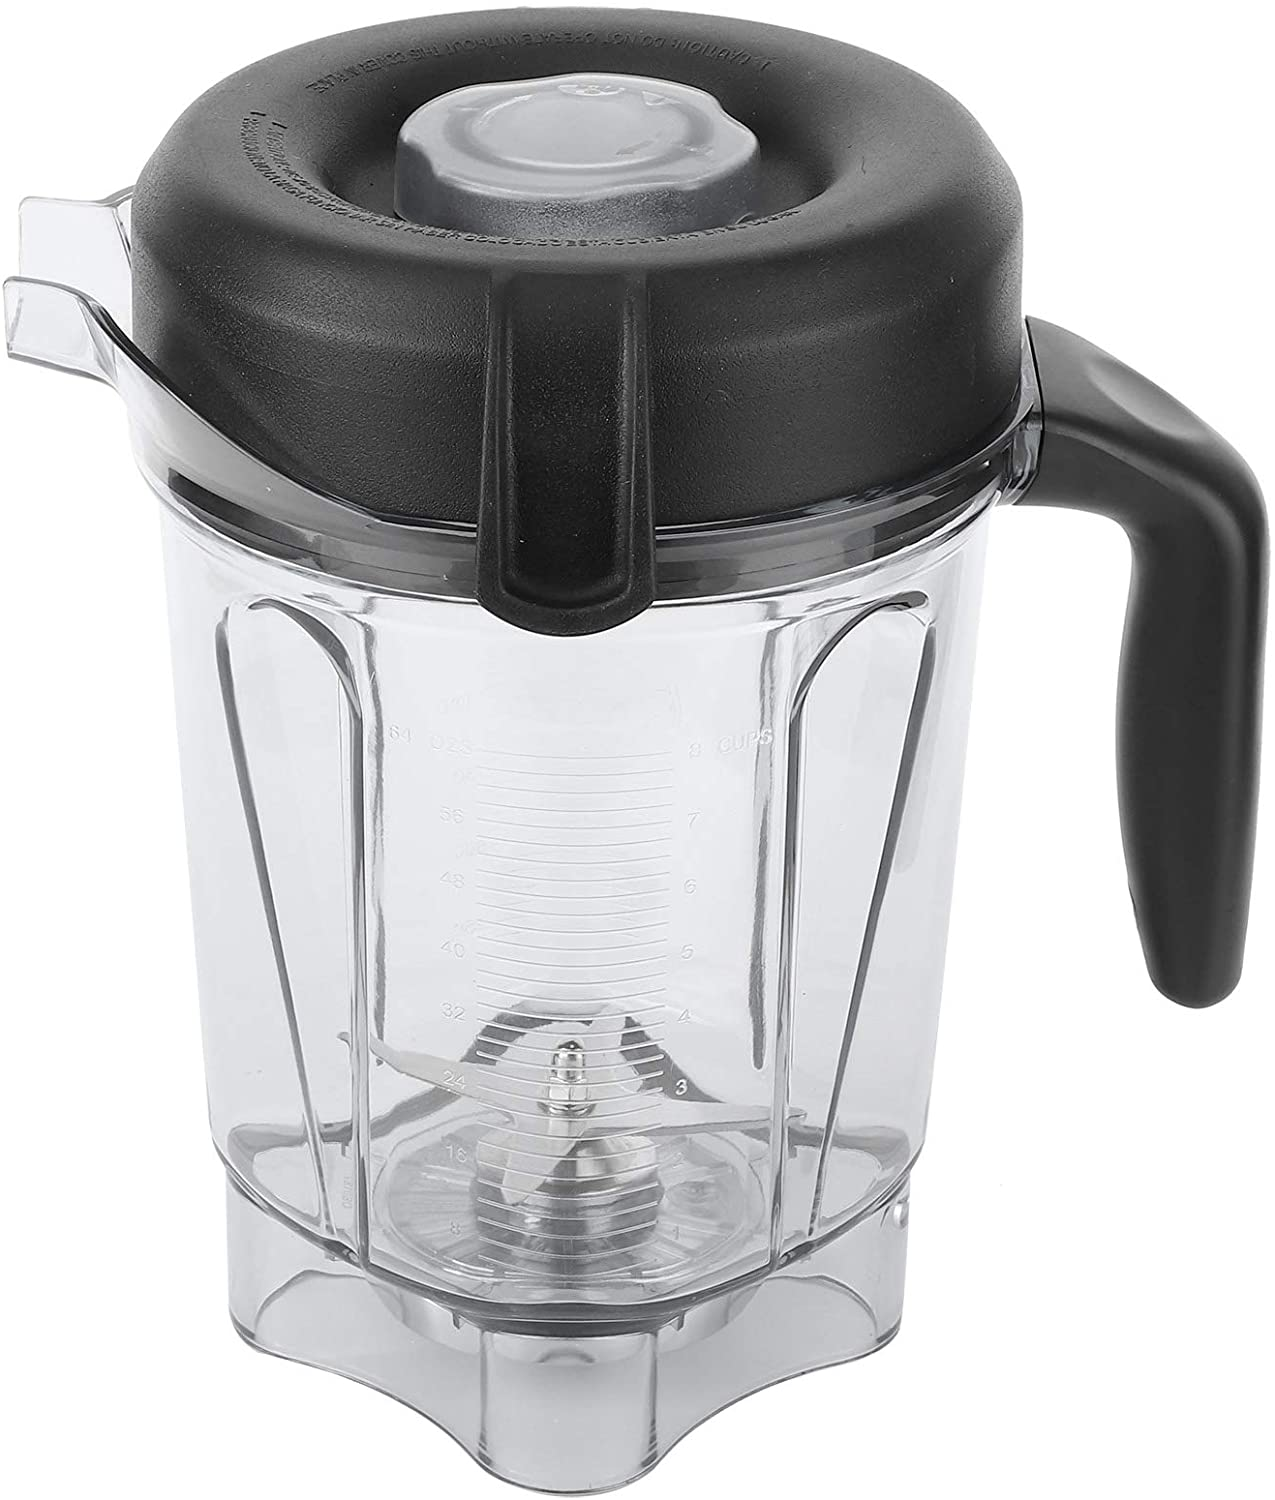 fuwinkr Blender Parts, Blender Cup, Blender Accessories, for Vitamix G‑Series Machines